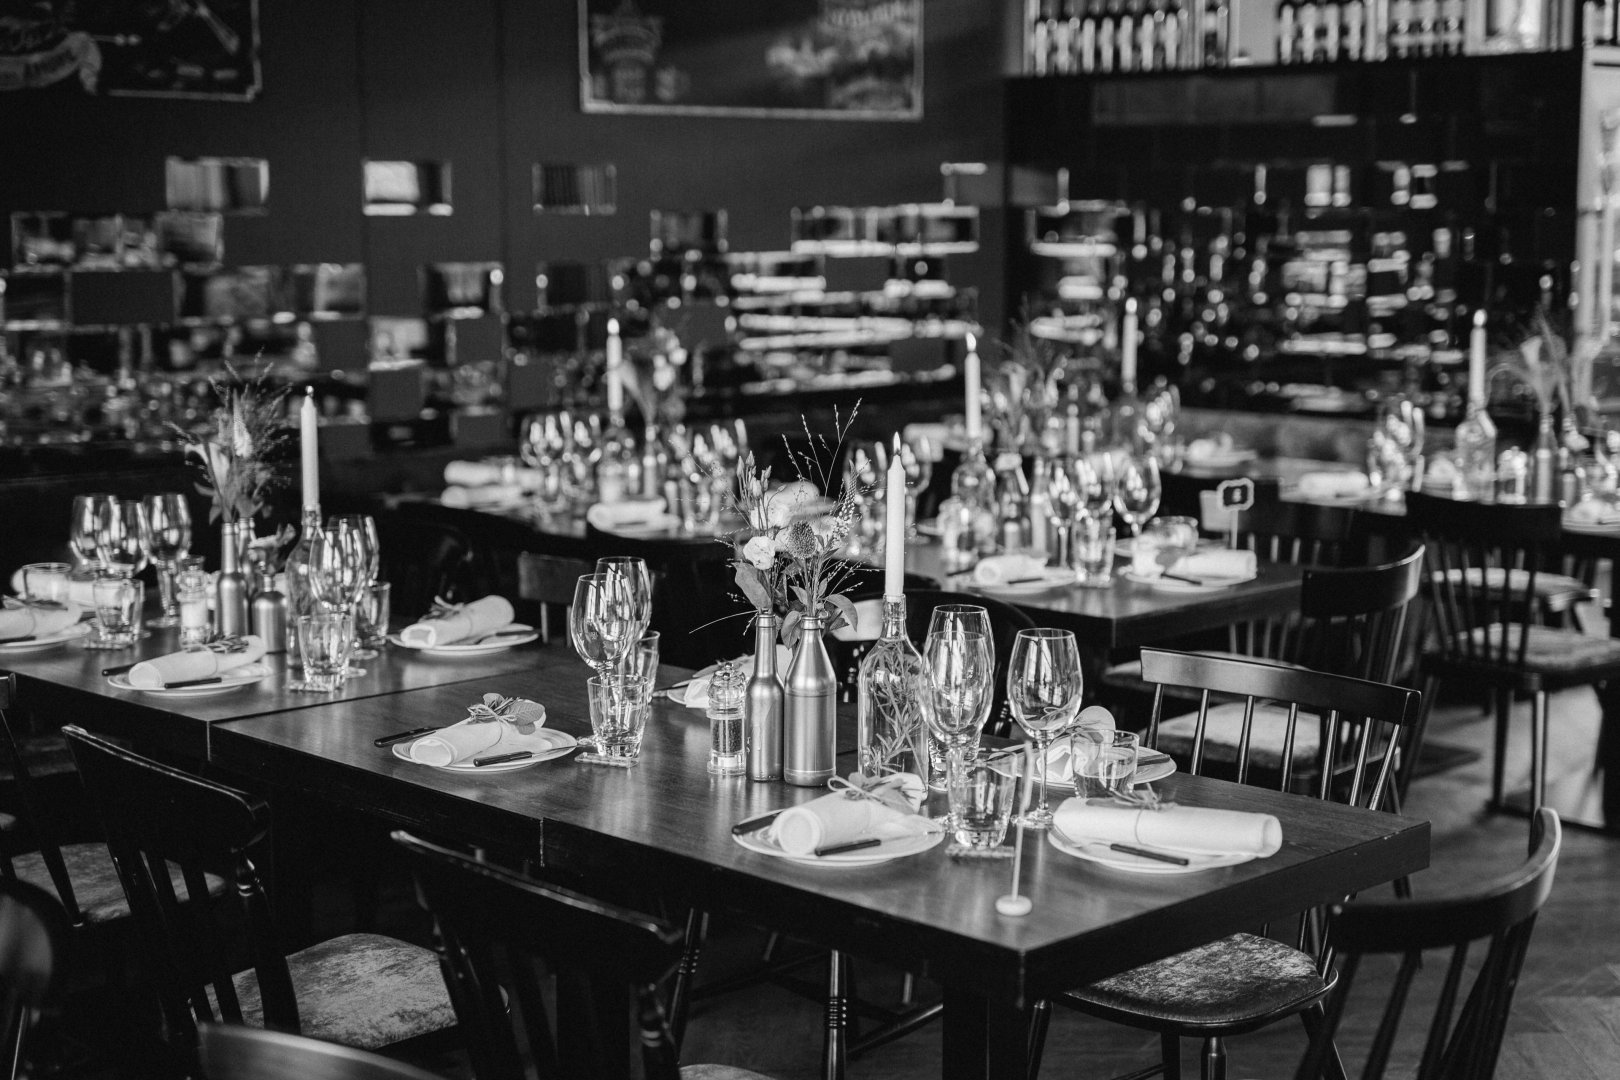 Black-and-white Table Monochrome Monochrome photography Restaurant Room Furniture Photography Building Bar Barware Style